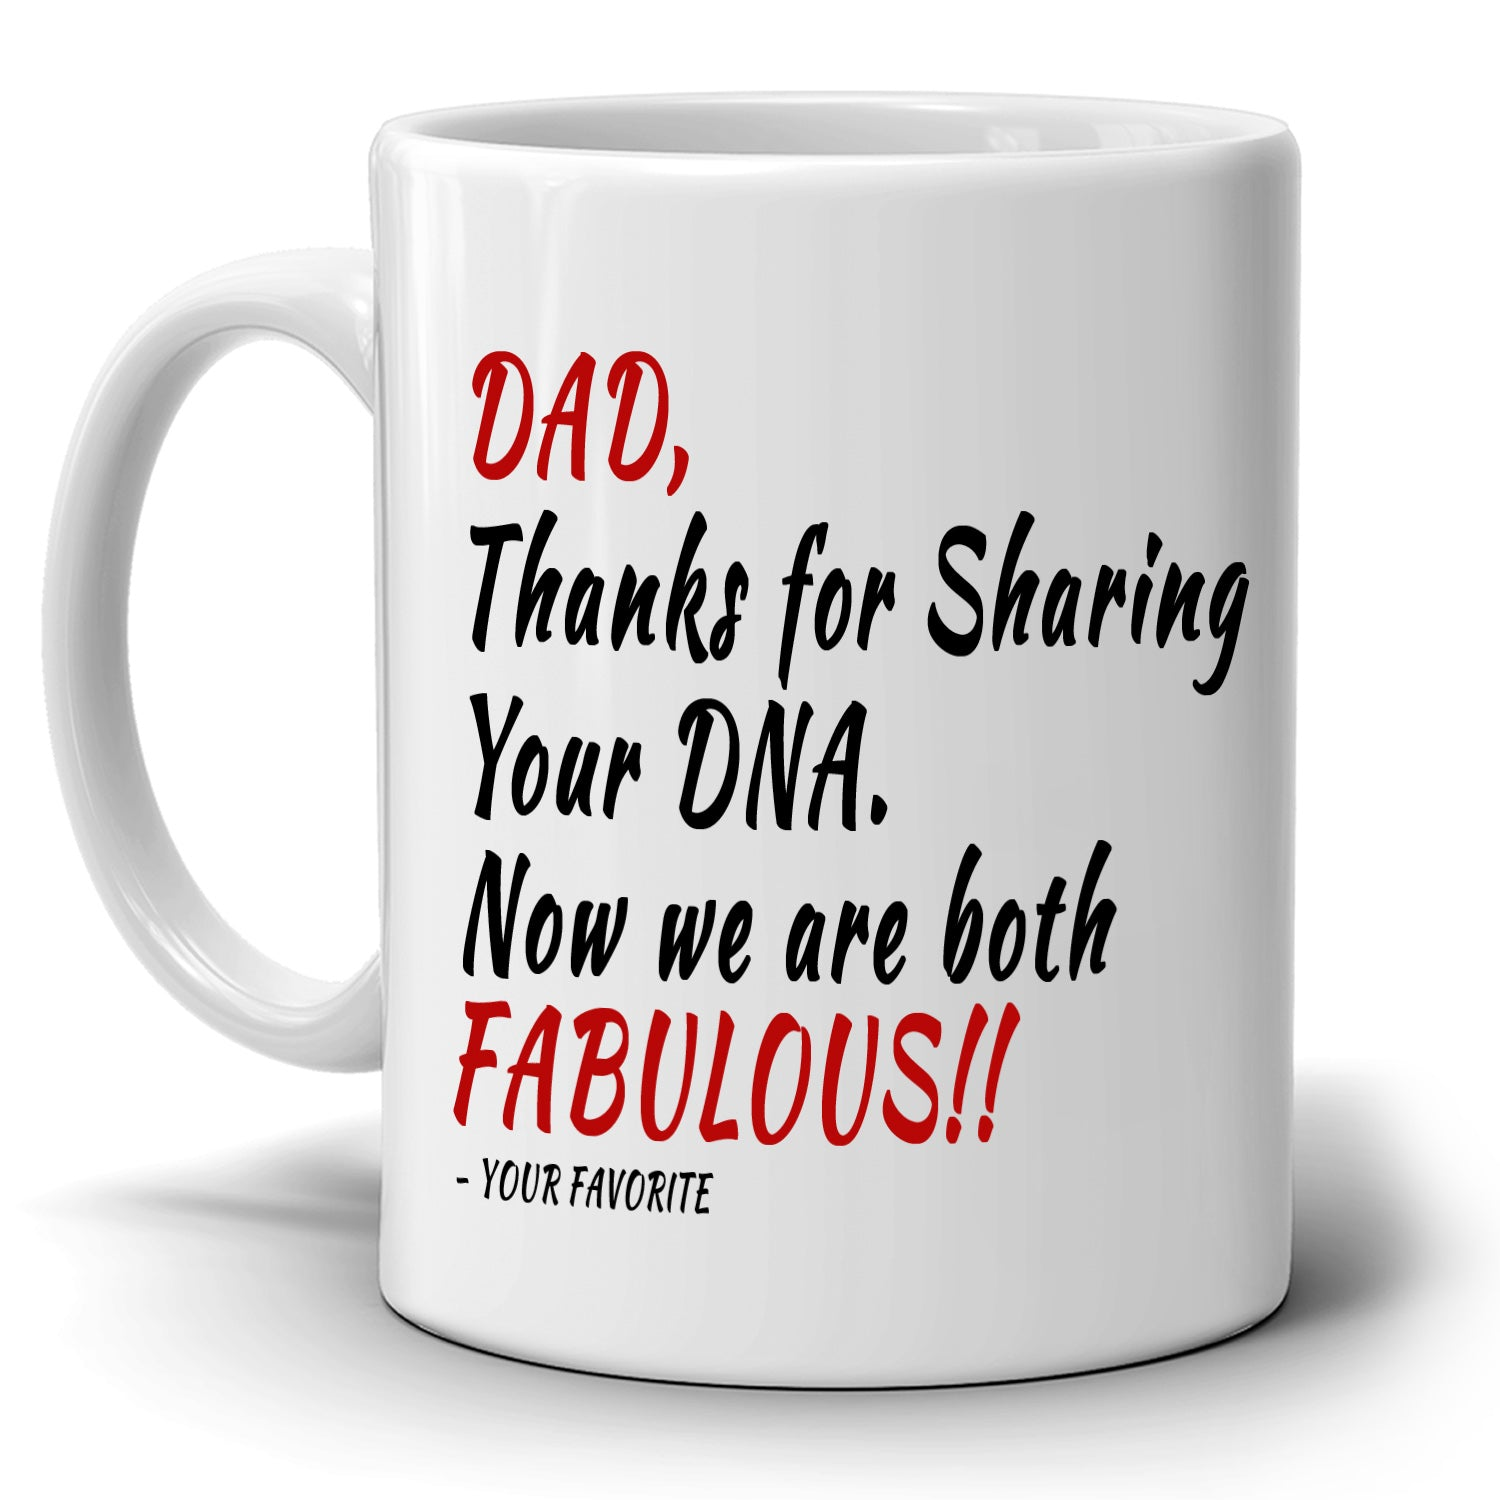 Awesome Daddy Birthday Gifts Mug From Daughters And Sons Dad Thanks For Sharing Your DNA Now